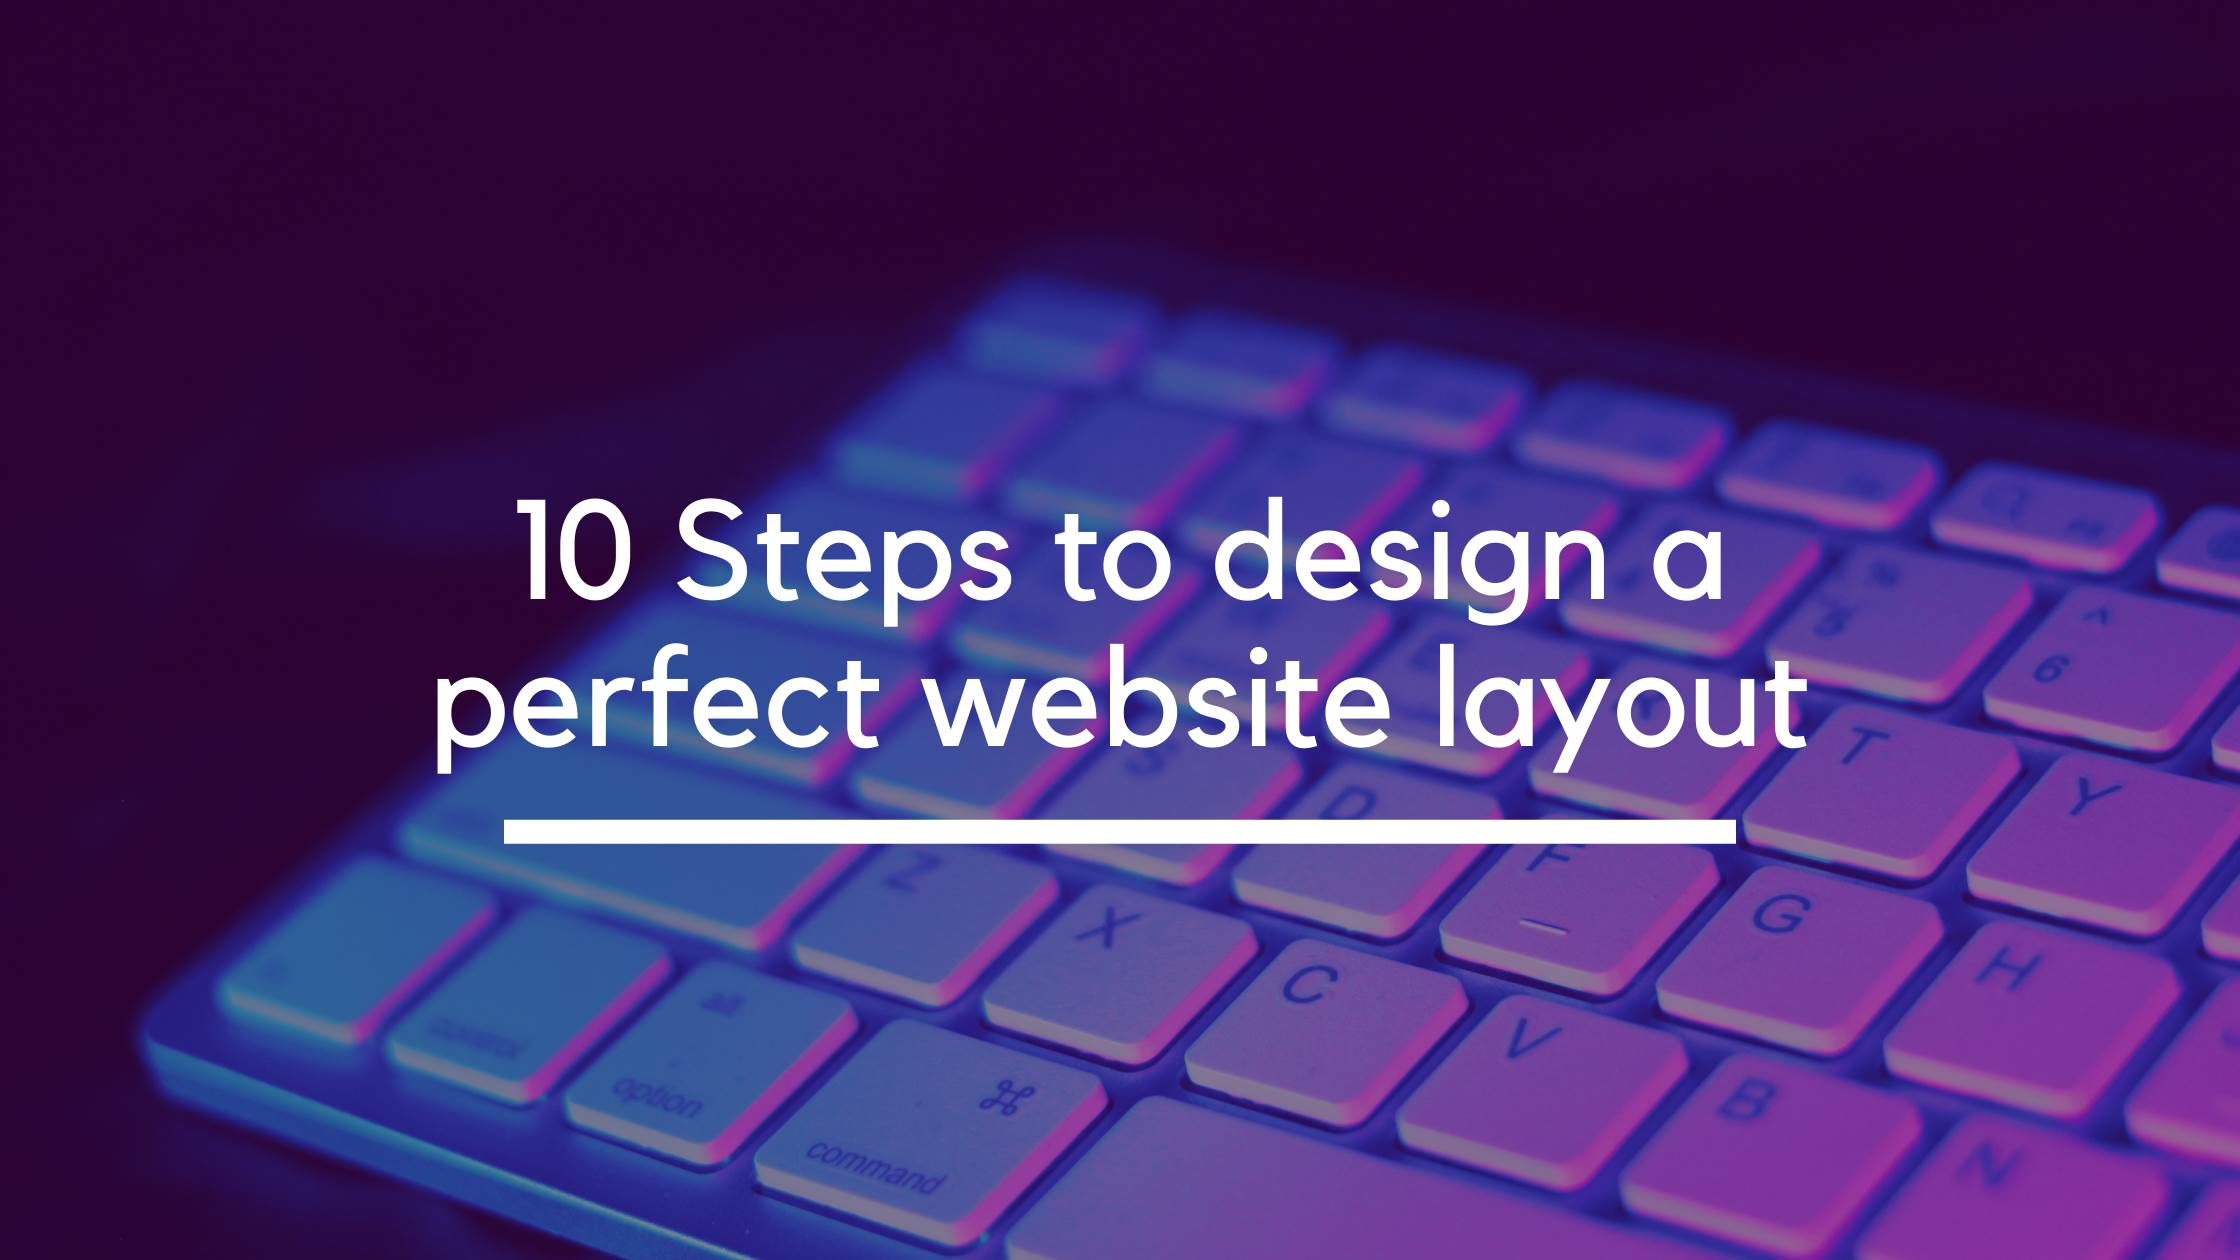 10 Steps to design a perfect website layout